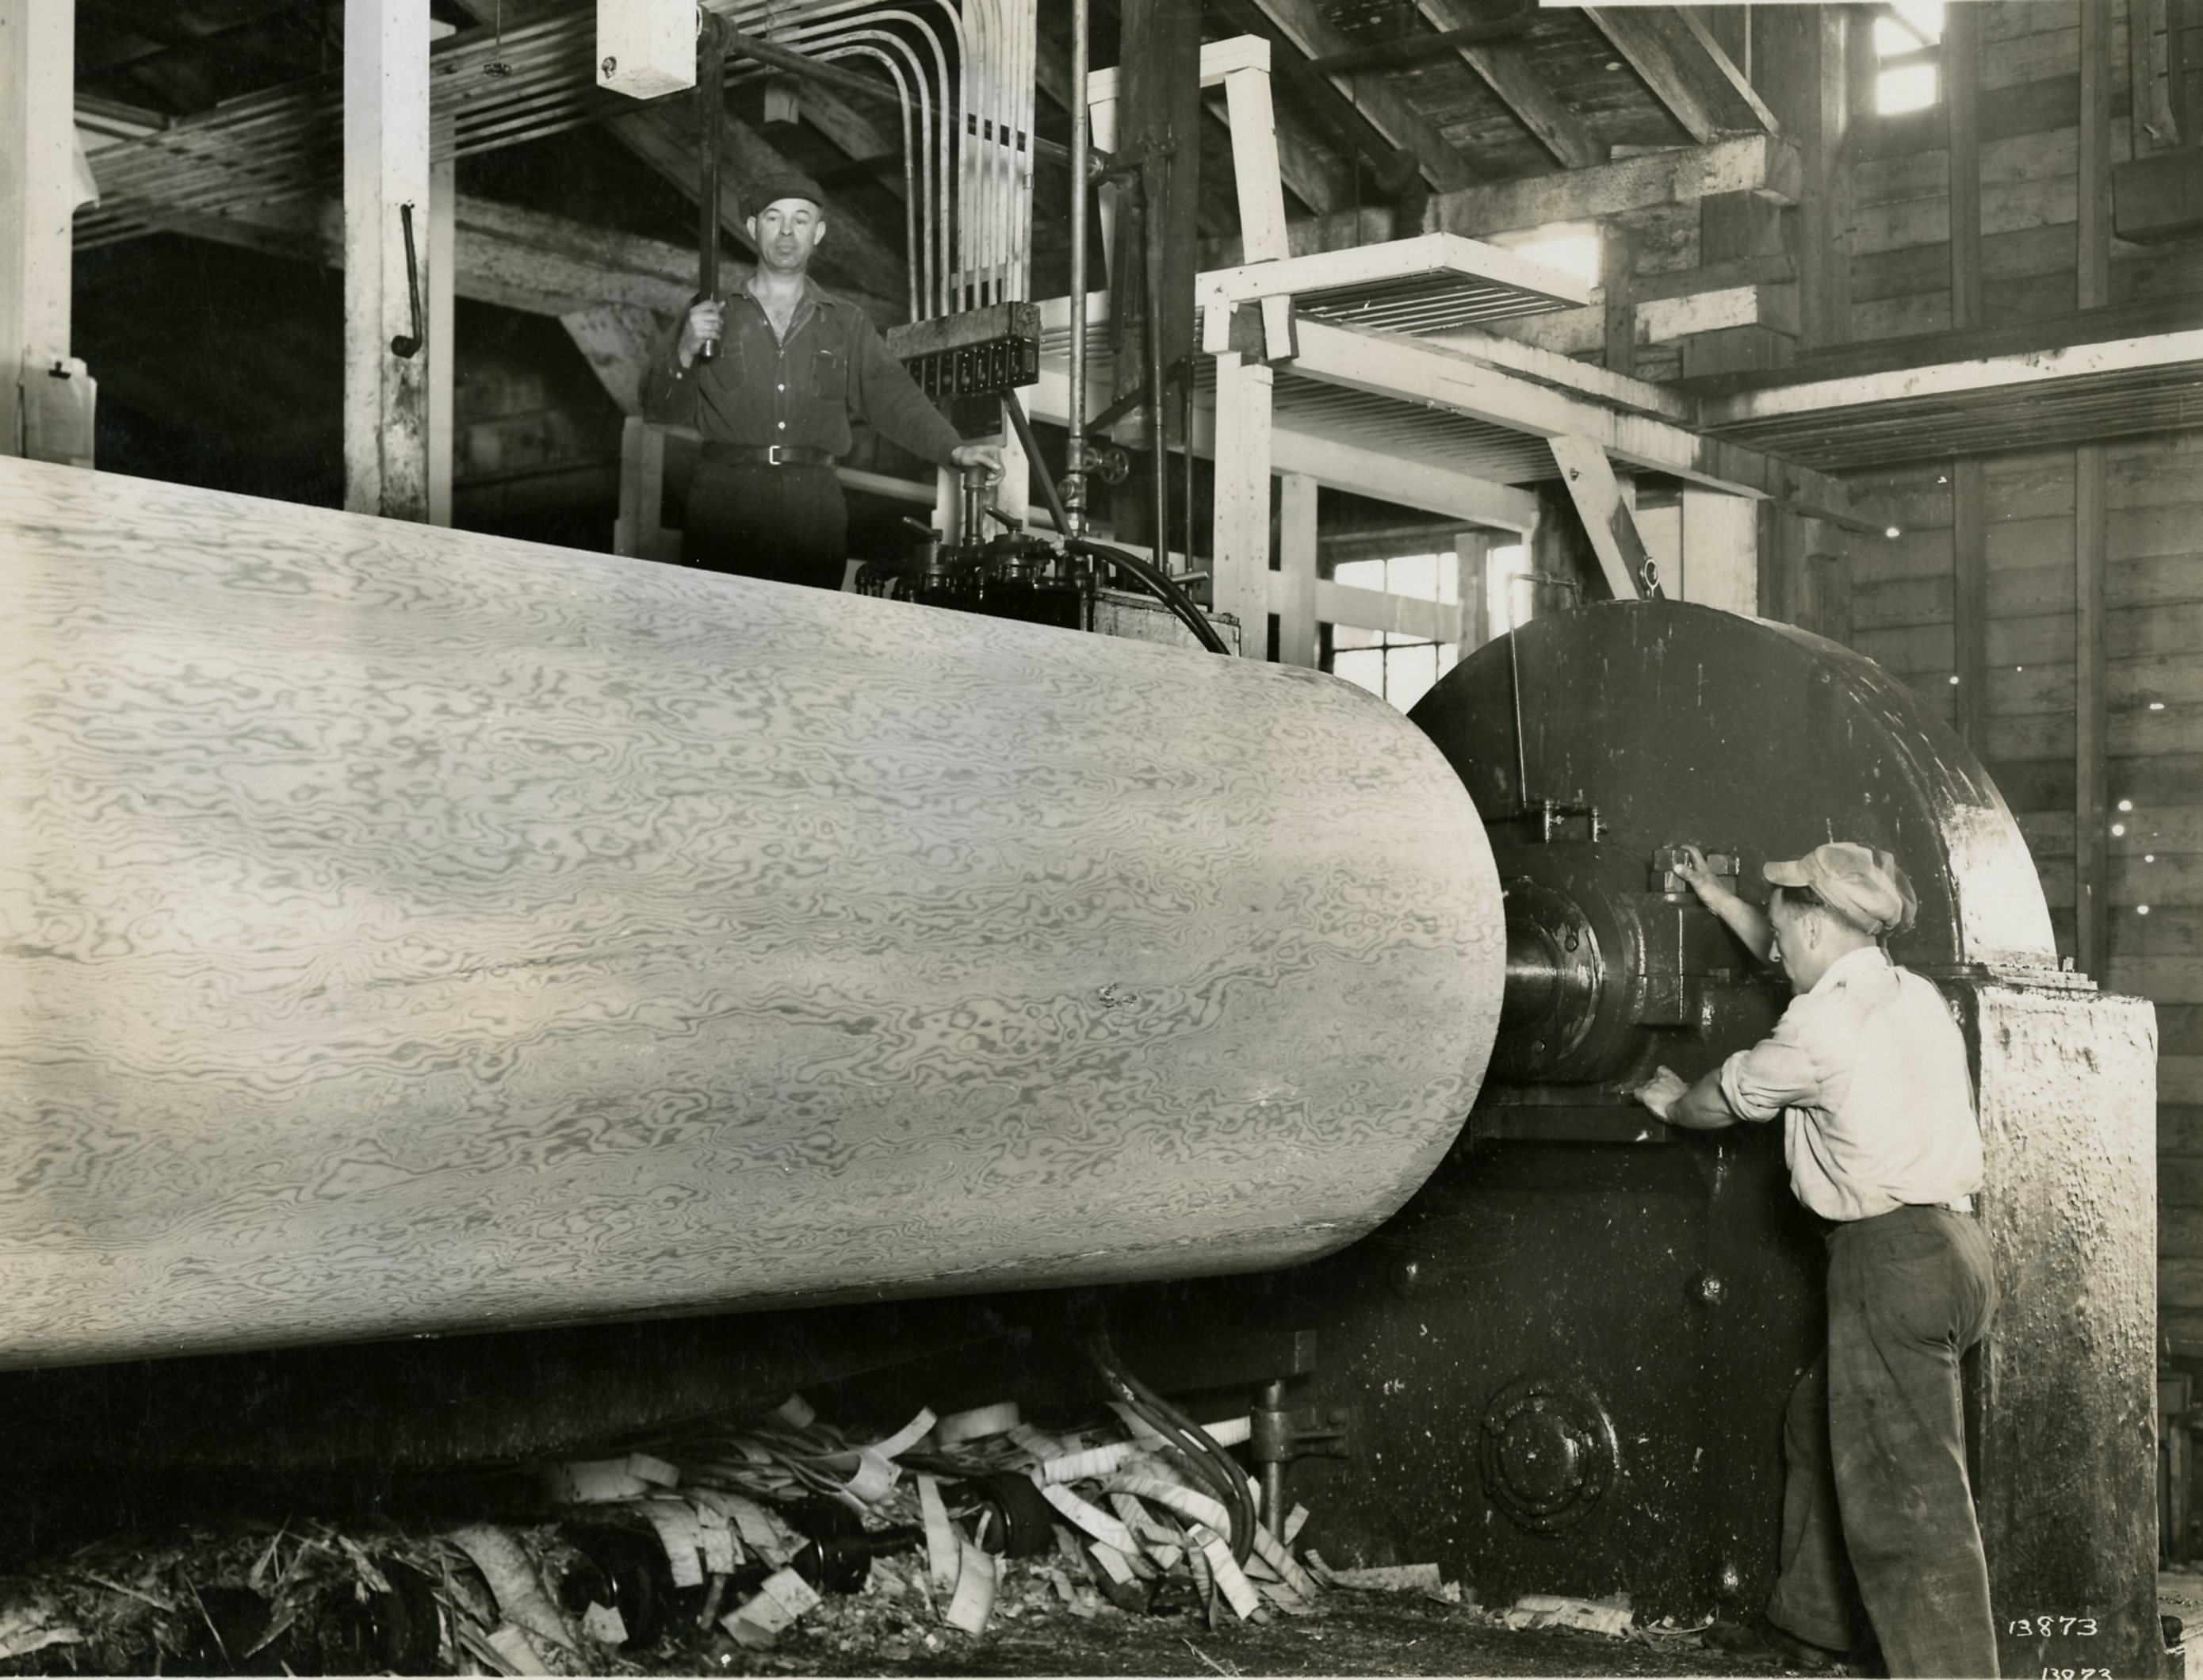 Photograph of Plywood Veneer Lathe, Circa 1940s (JPG) Opens in new window